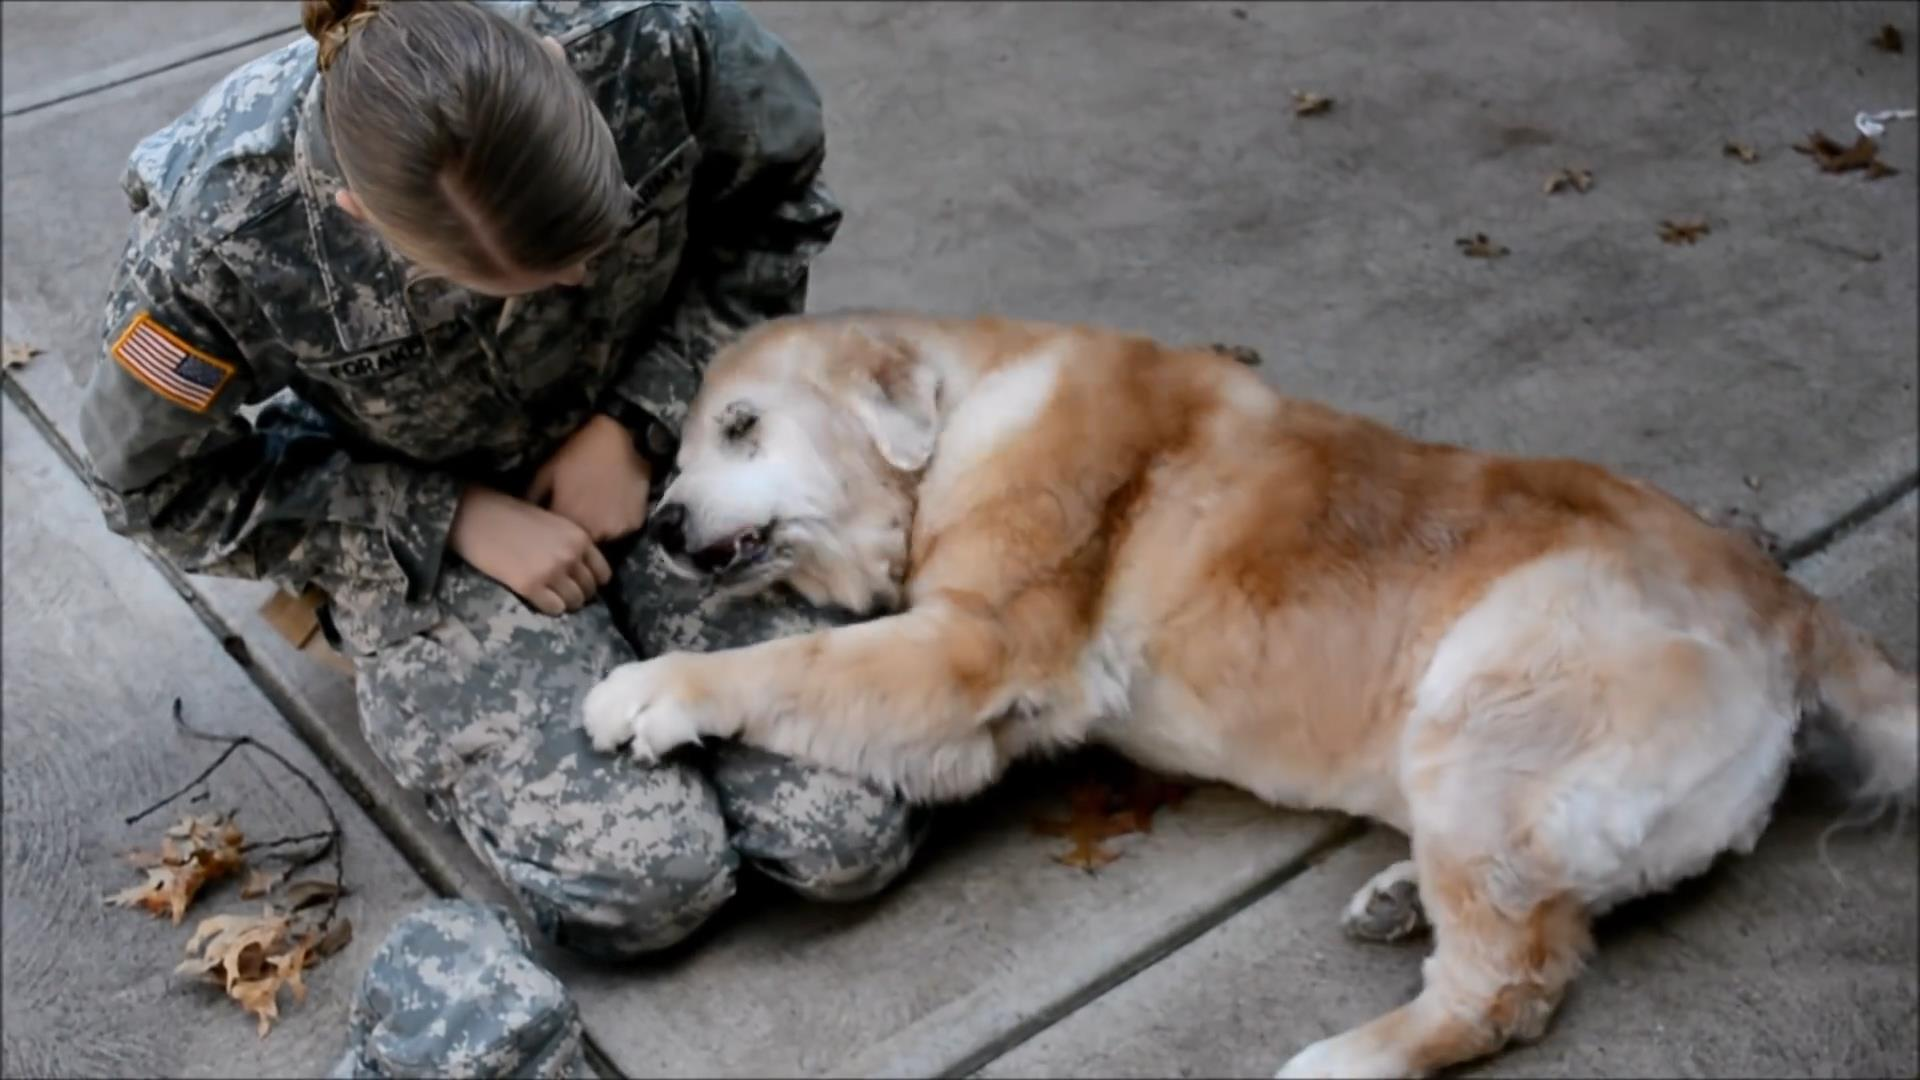 Soldier reunites with 13-year-old dog in heartwarming video